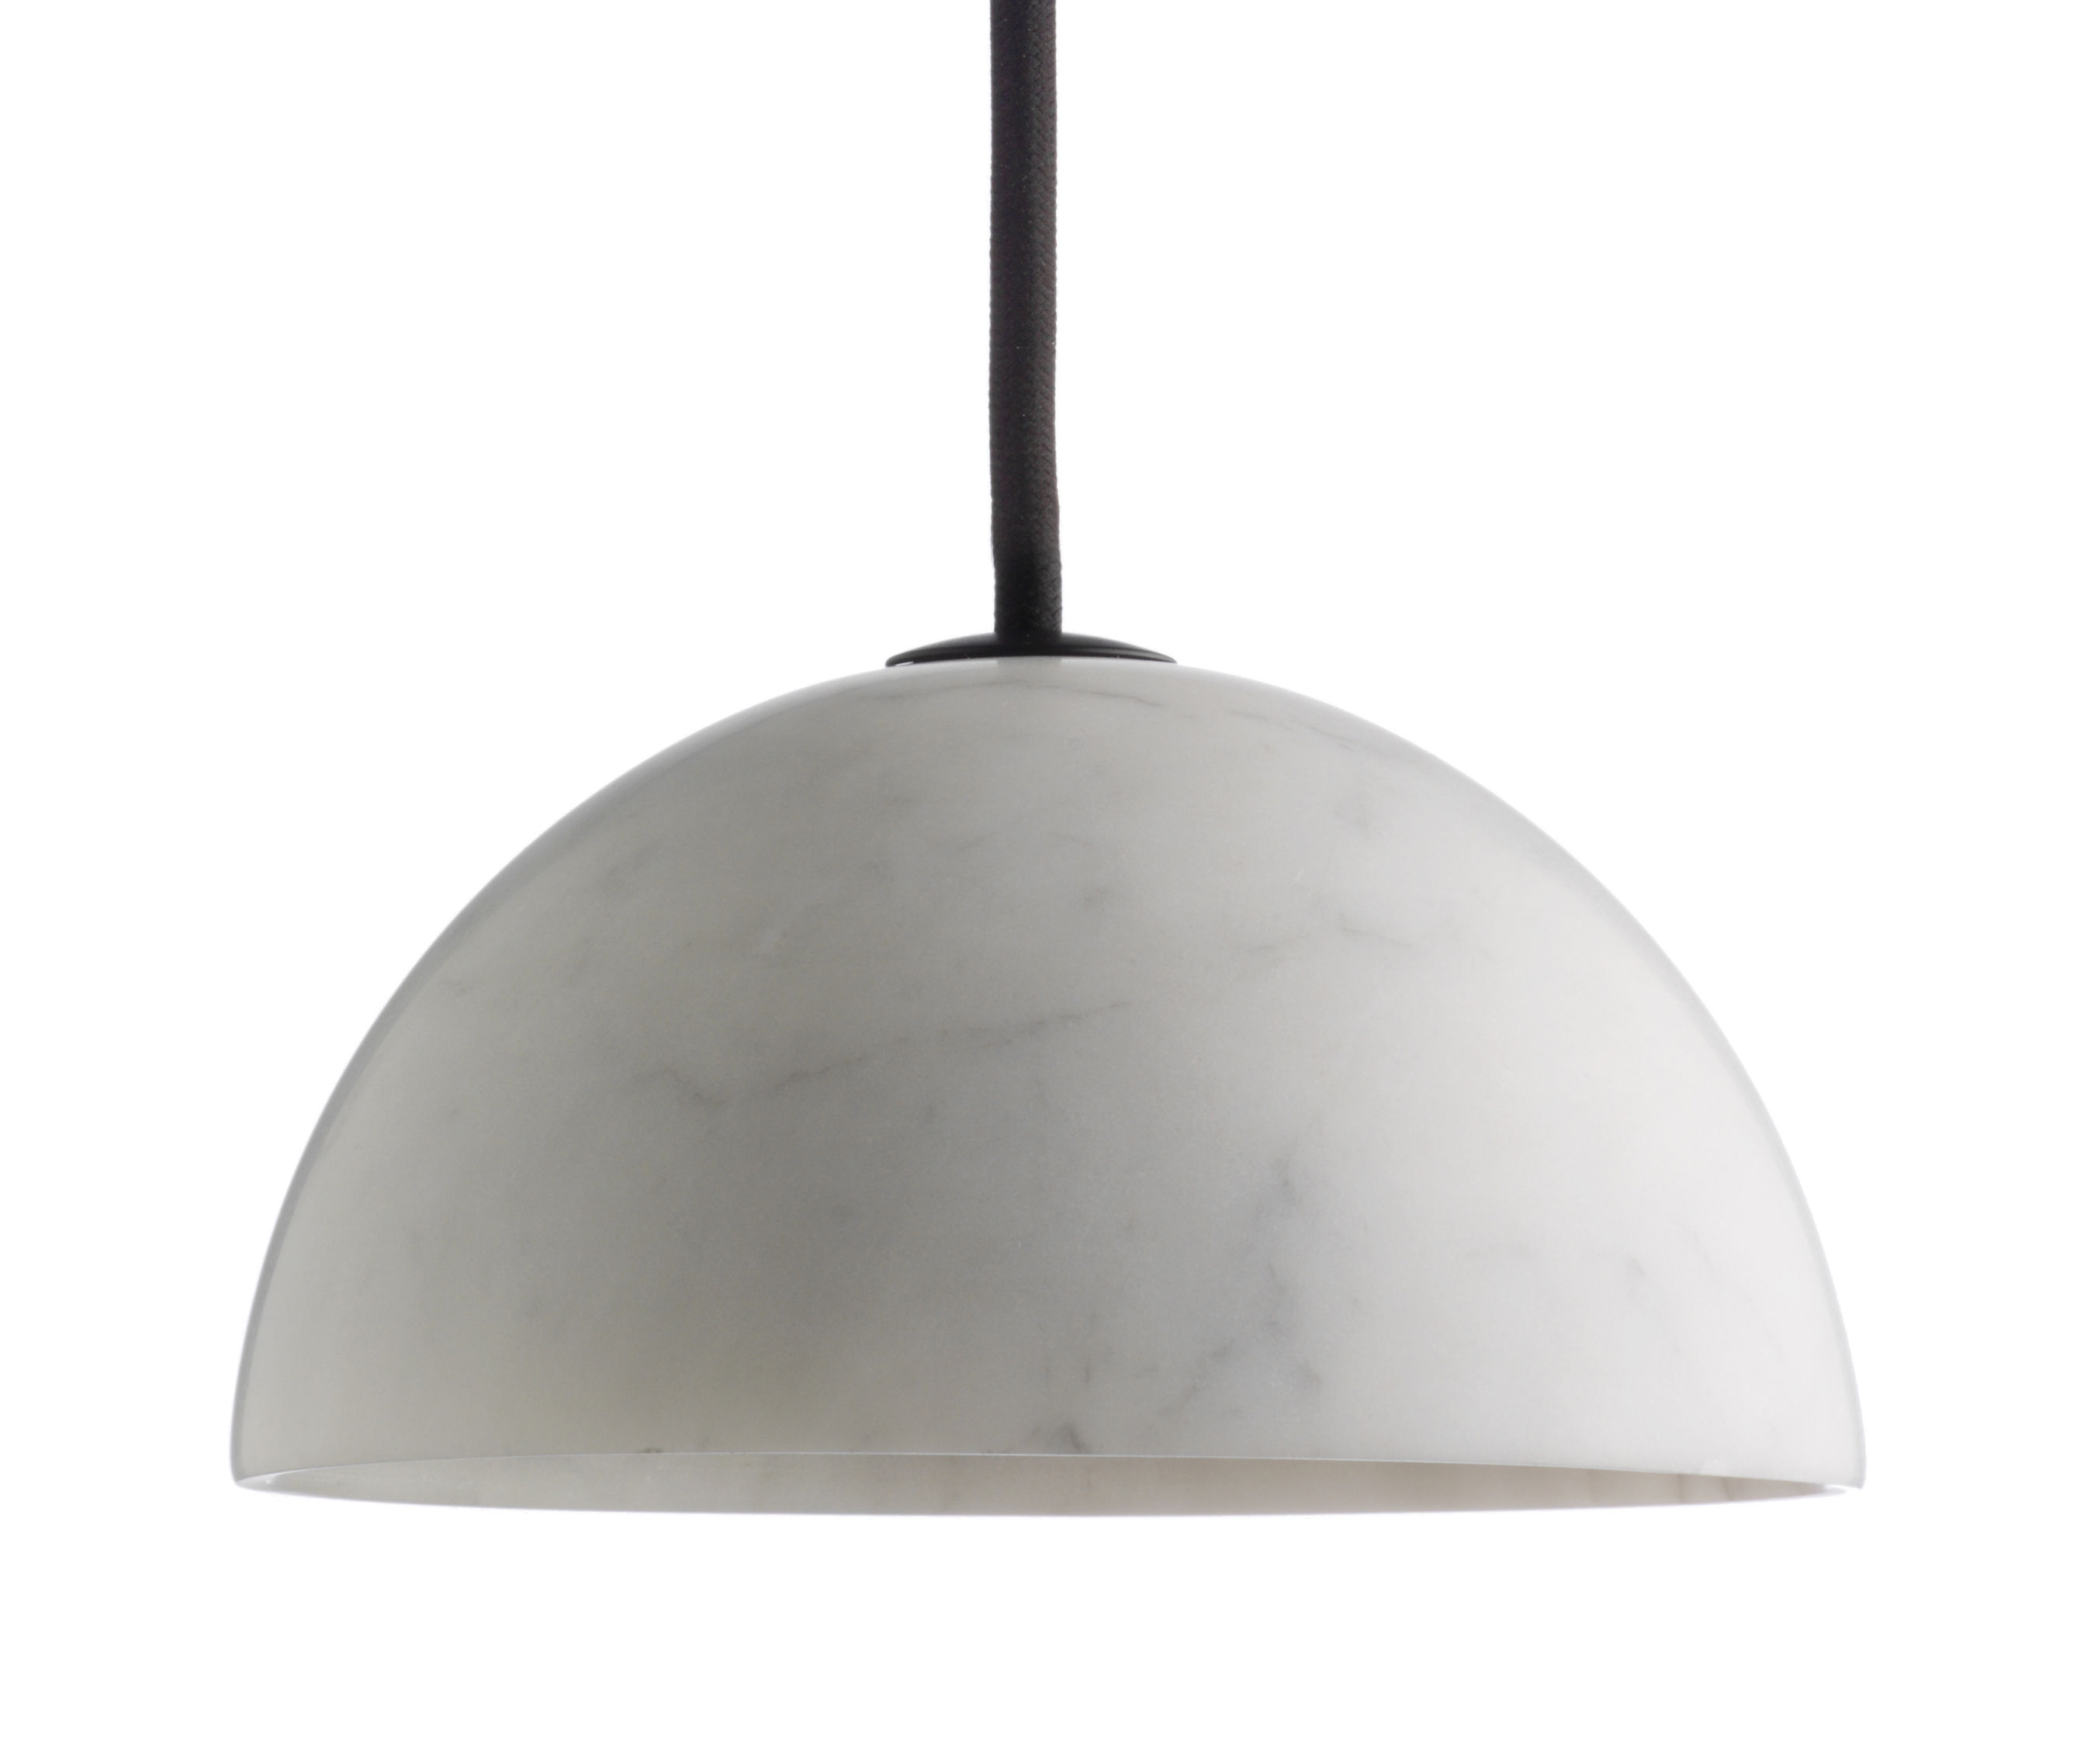 Lighting - Pendant Lighting - Marble Pendant - Ø 13,5 x H 6,5 cm by wrong.london - White marble - ABS, Marble